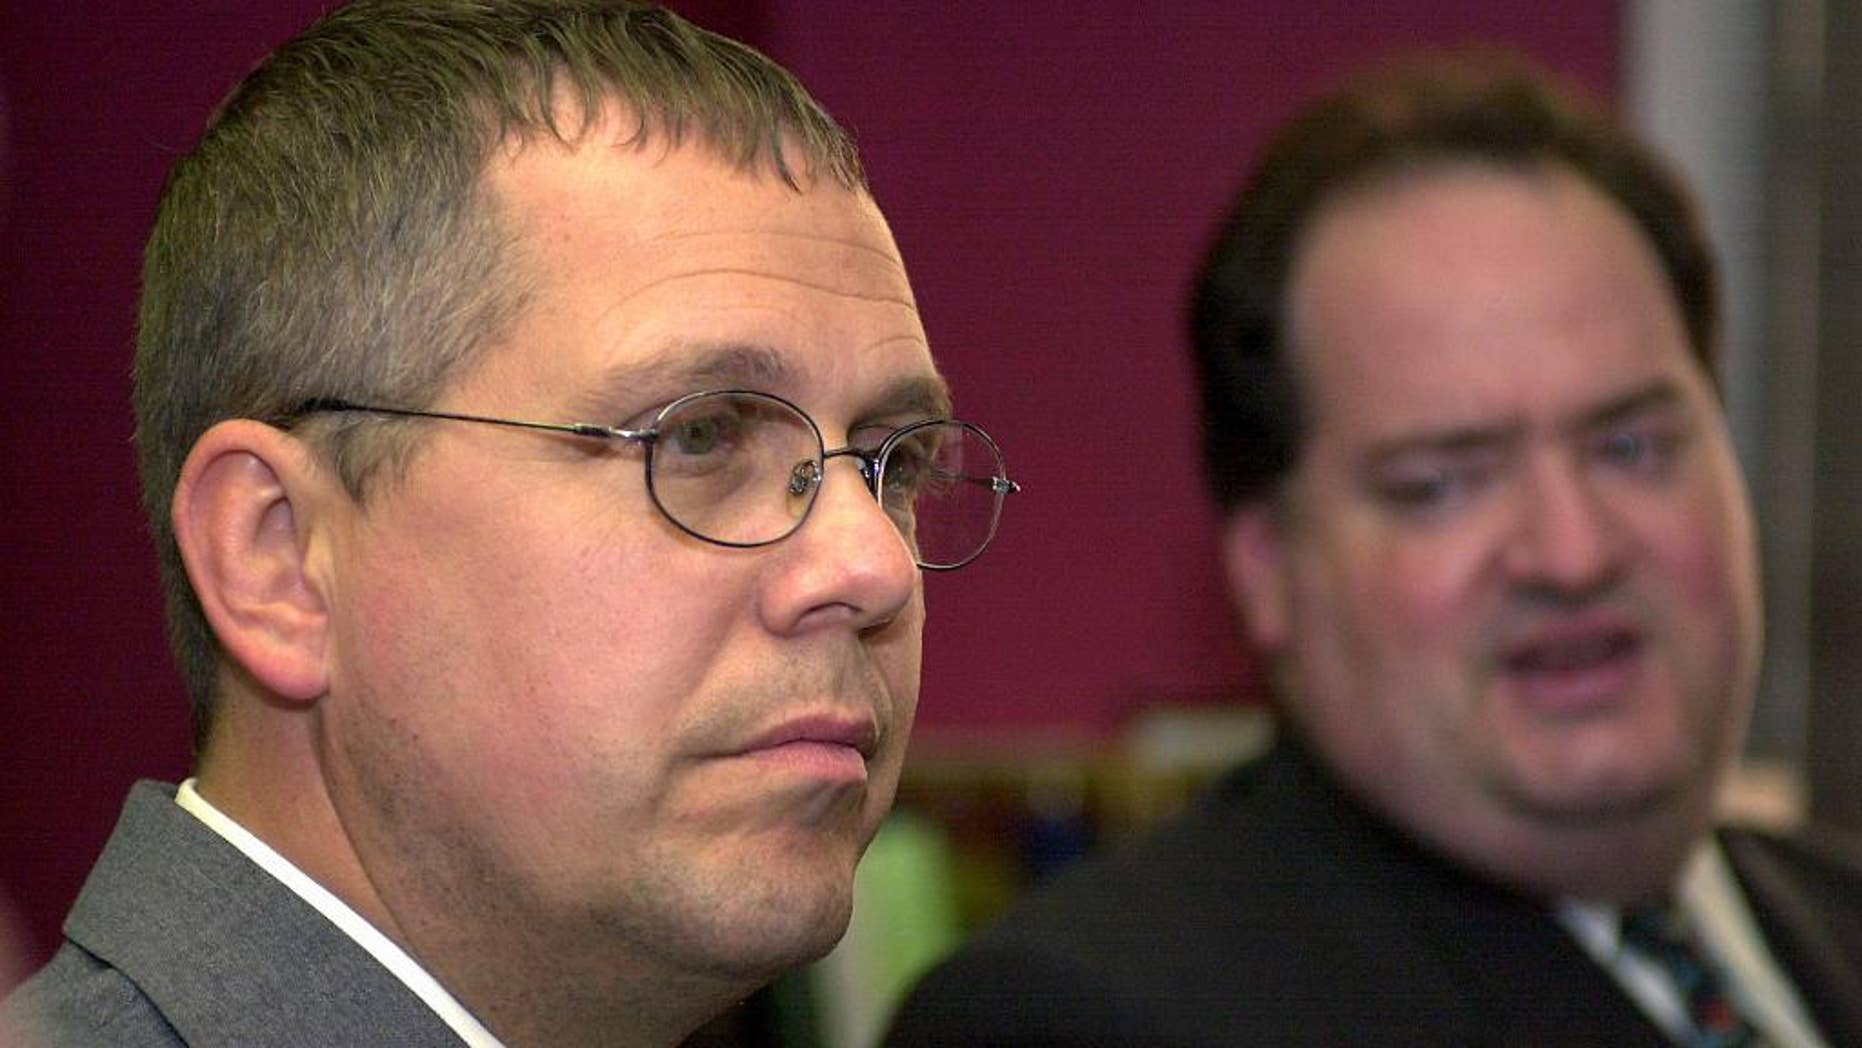 File-This Sept. 8, 2005, file photo shows Customs and Border Protection Officer Robert Rhodes listening to his defense attorney, Steven Cohen, during a press conference after the verdict from the U.S. Federal Courthouse in Buffalo, N.Y. The United States is defending itself against a Chinese tourist's $10 million injury claim with the testimony of a surprising witness  a border officer the government initially fired and charged in the case. Rhodes says he was eager to testify in the lawsuit filed by Zhao Yan, being tried now in Rochester, even though the government's prosecution of him left him bankrupt. He says he was glad to be able to tell his side of the story. (AP Photo/Don Heupel, File)